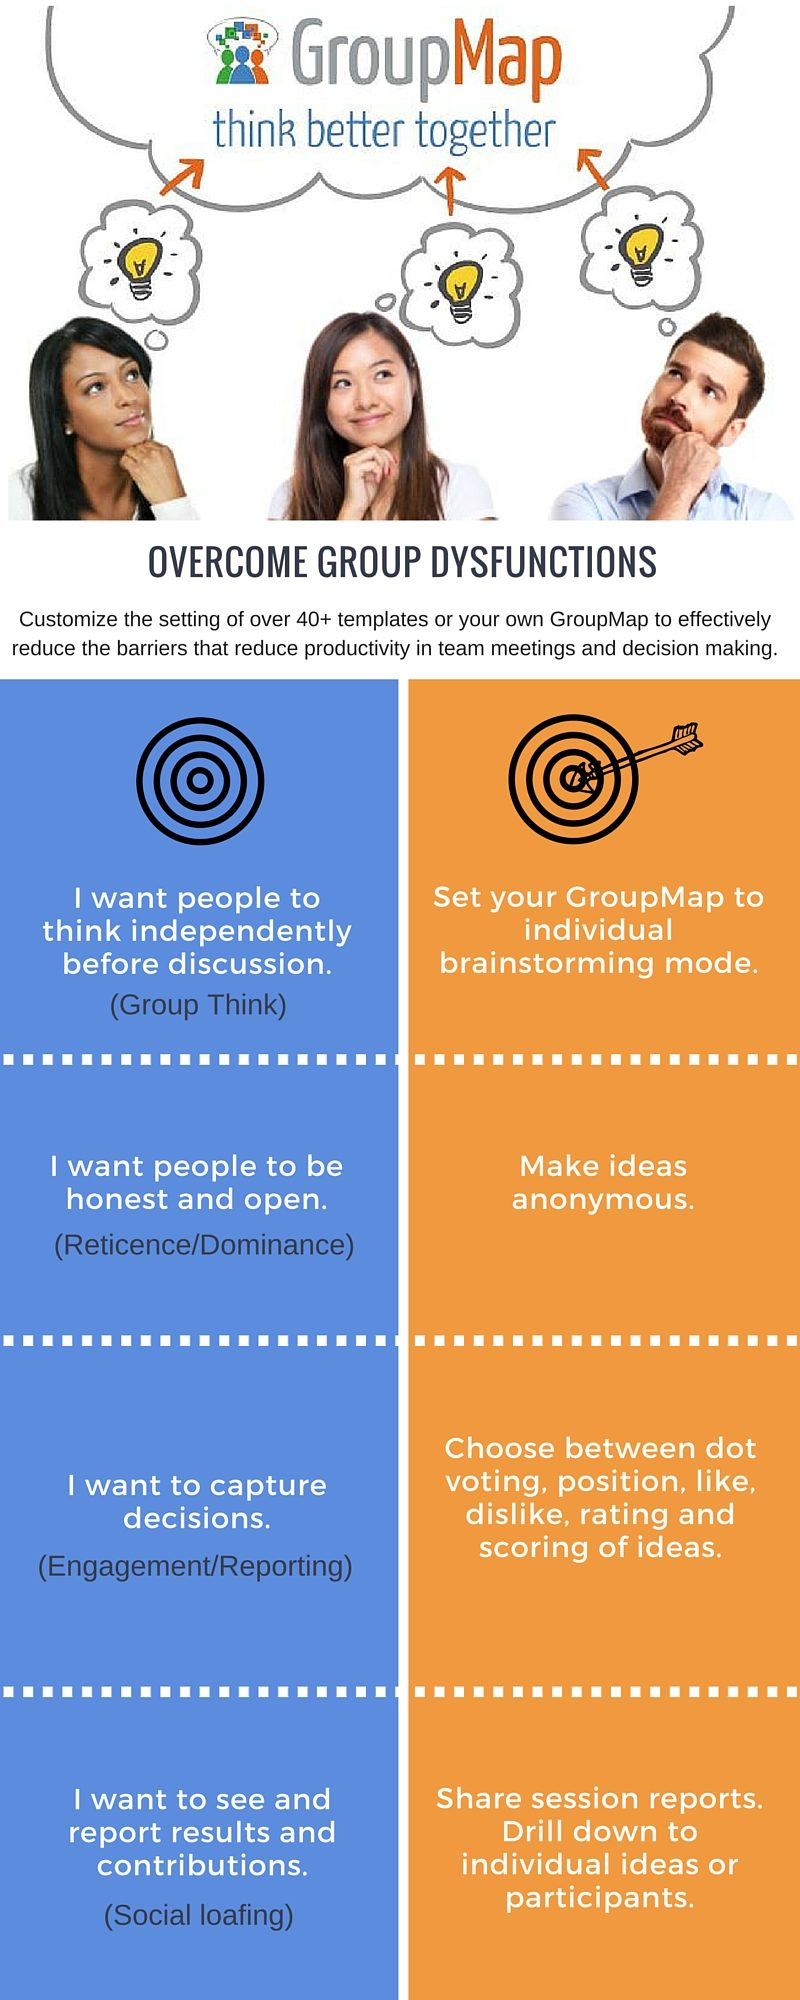 GroupMap group dysfunctions better meeting tips